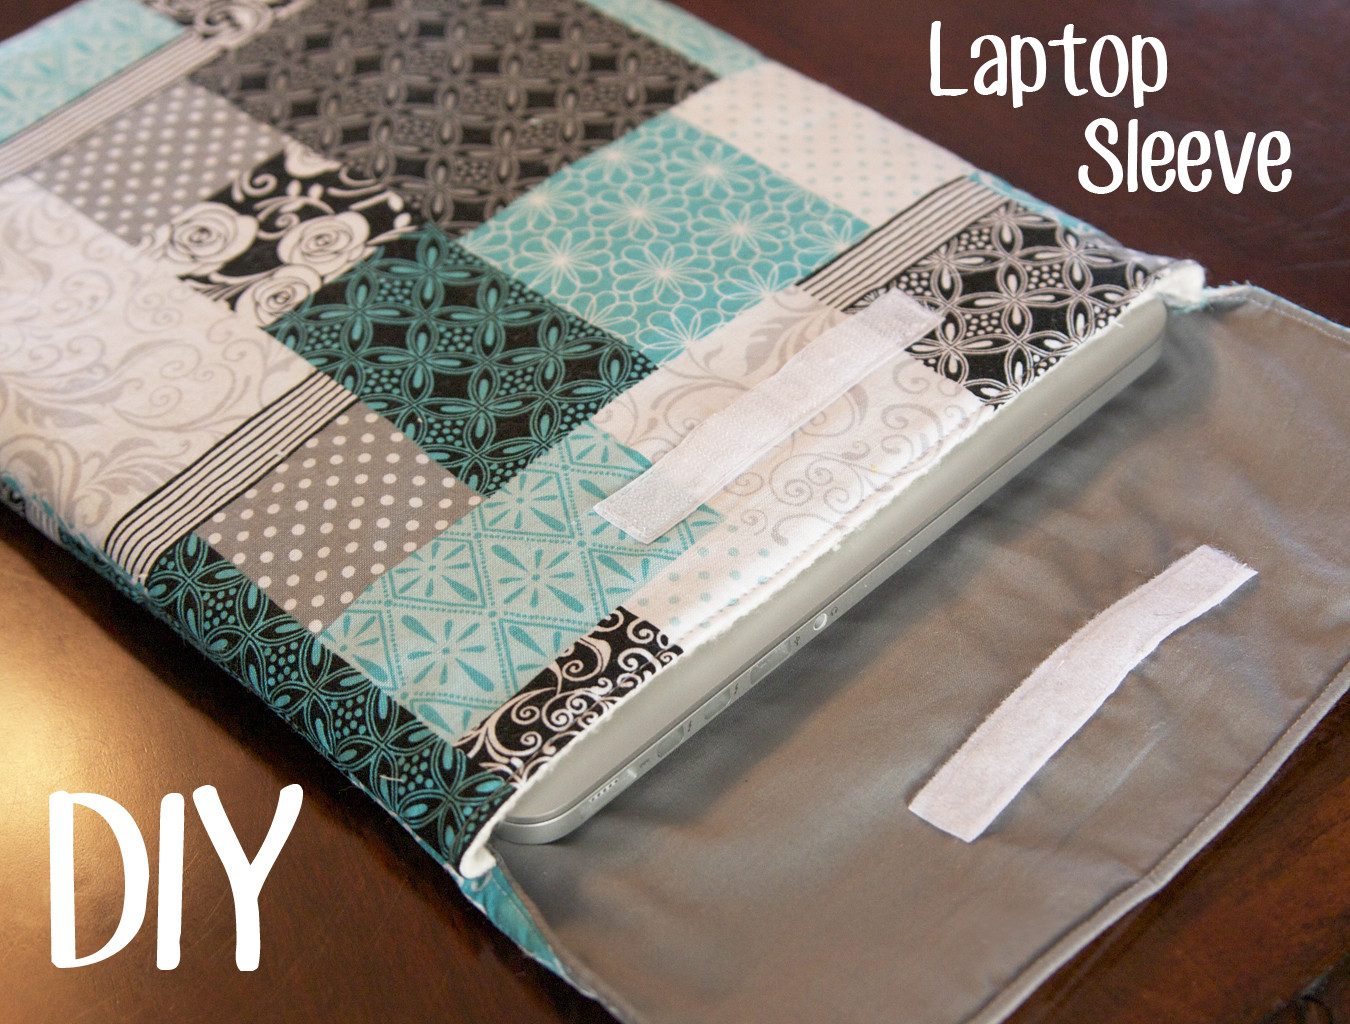 Best ideas about DIY Laptop Sleeve . Save or Pin 301 Moved Permanently Now.